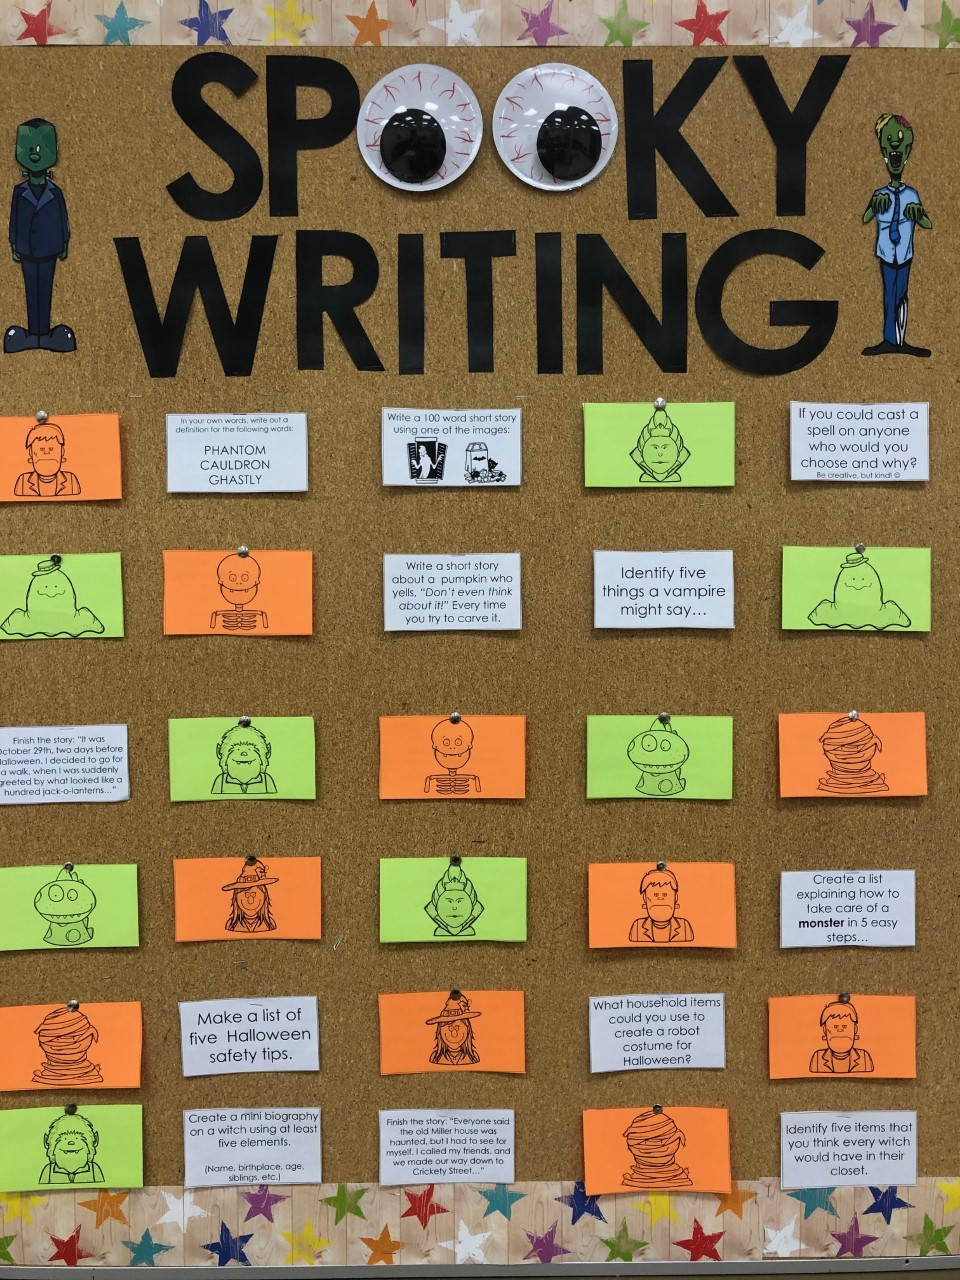 October 2019 - The Secondary English Coffee Shop